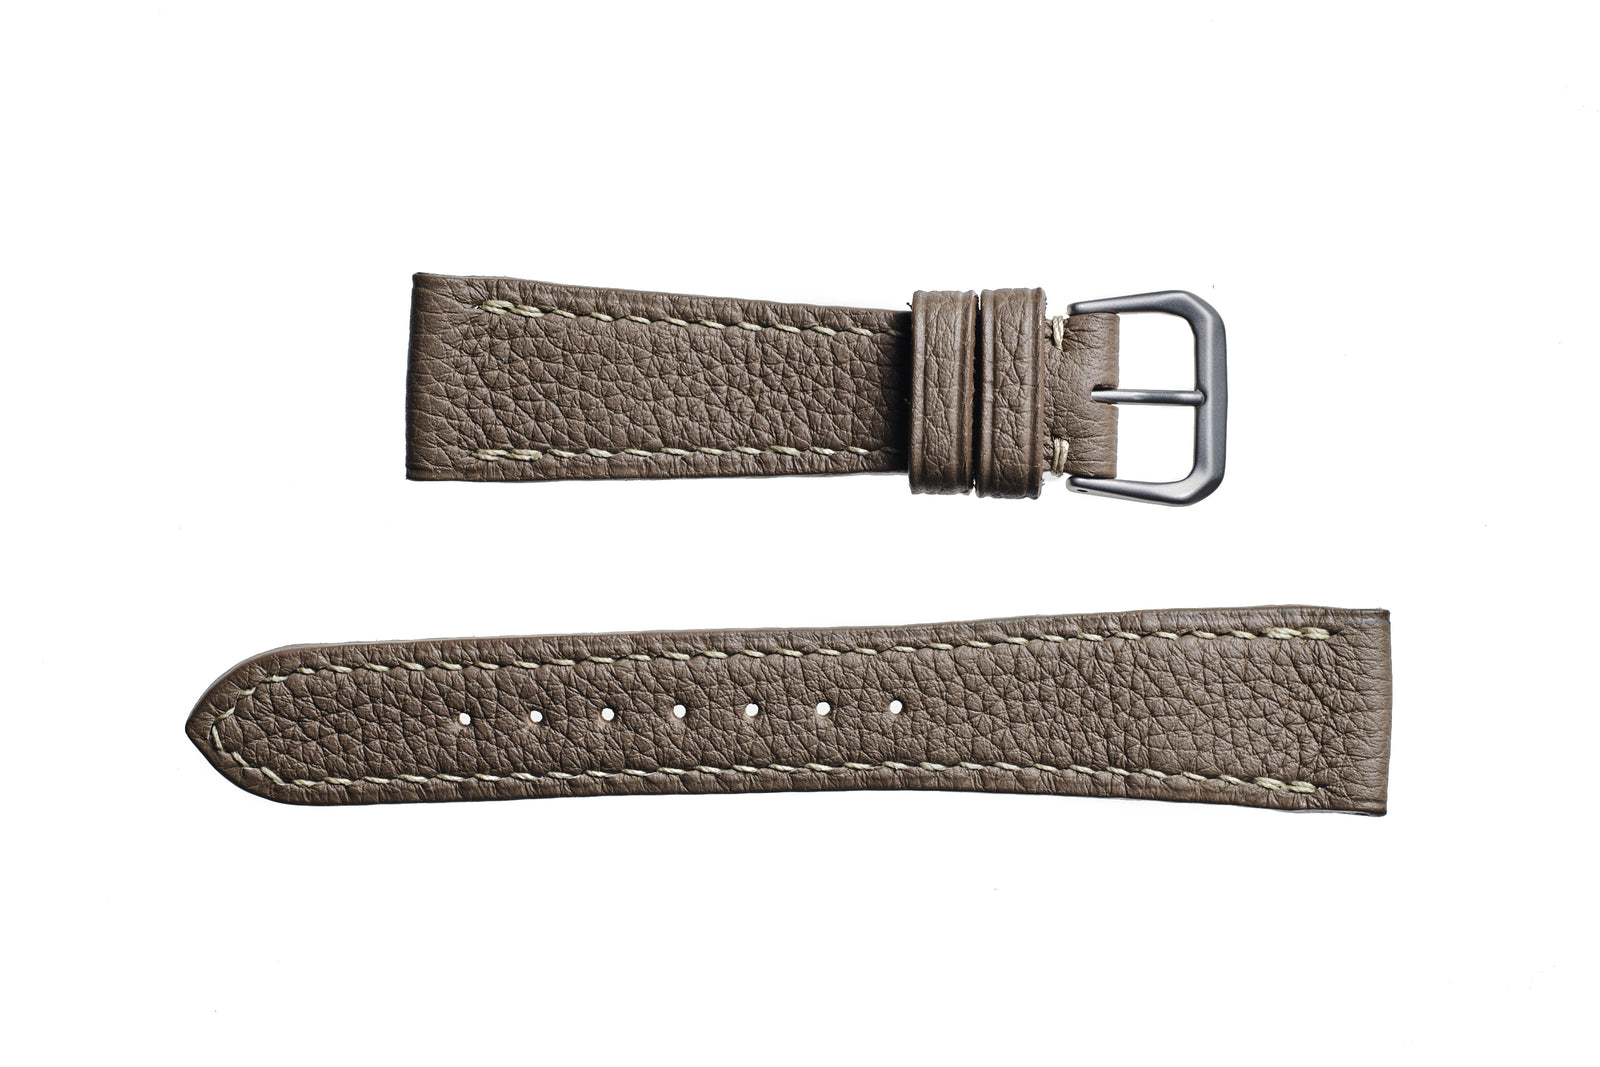 Taupe Alpine Shrunken Calf Watch Strap - David Lane Design